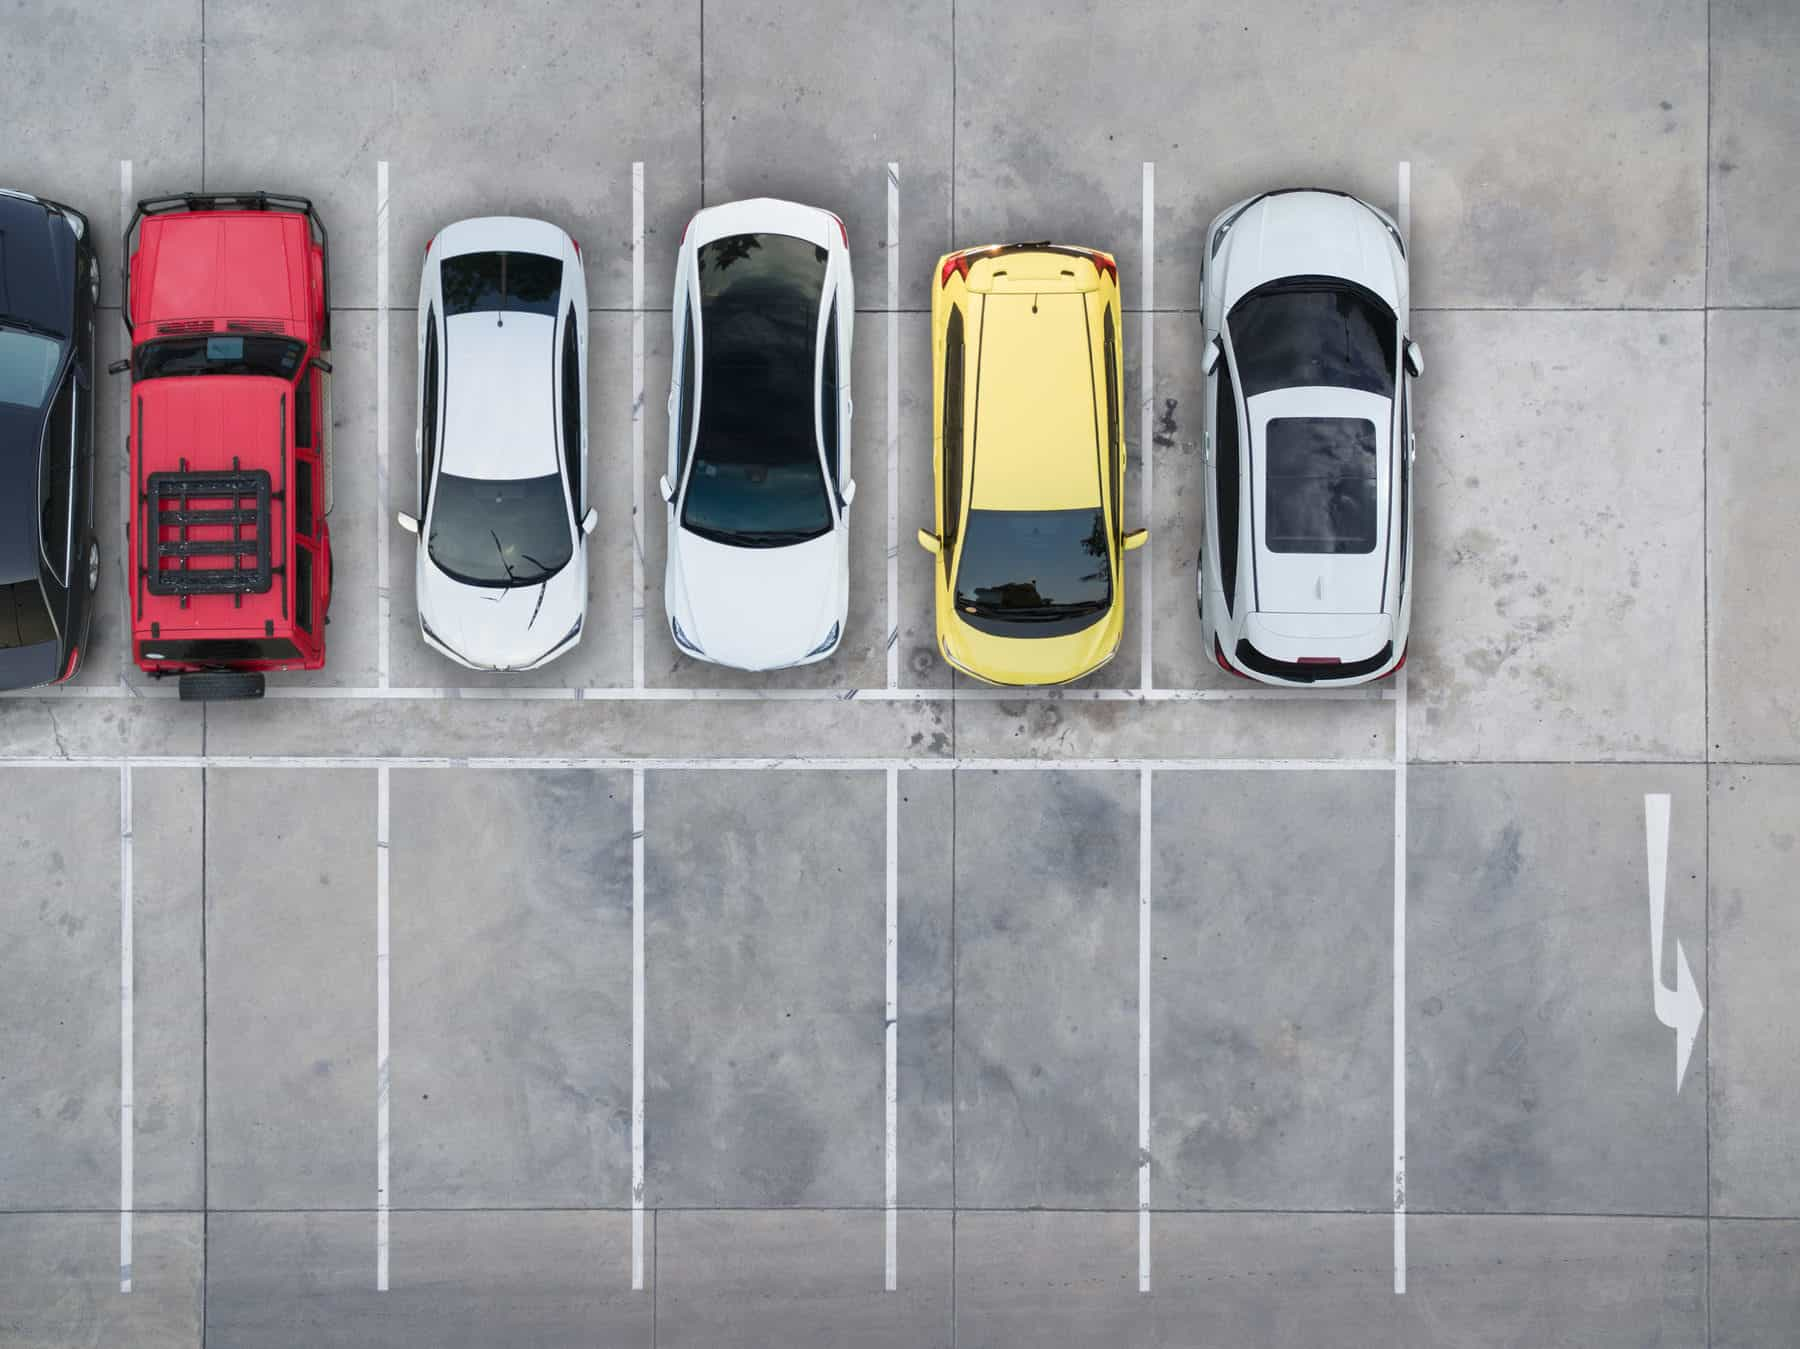 Looking for a discounted, long term parking solution?